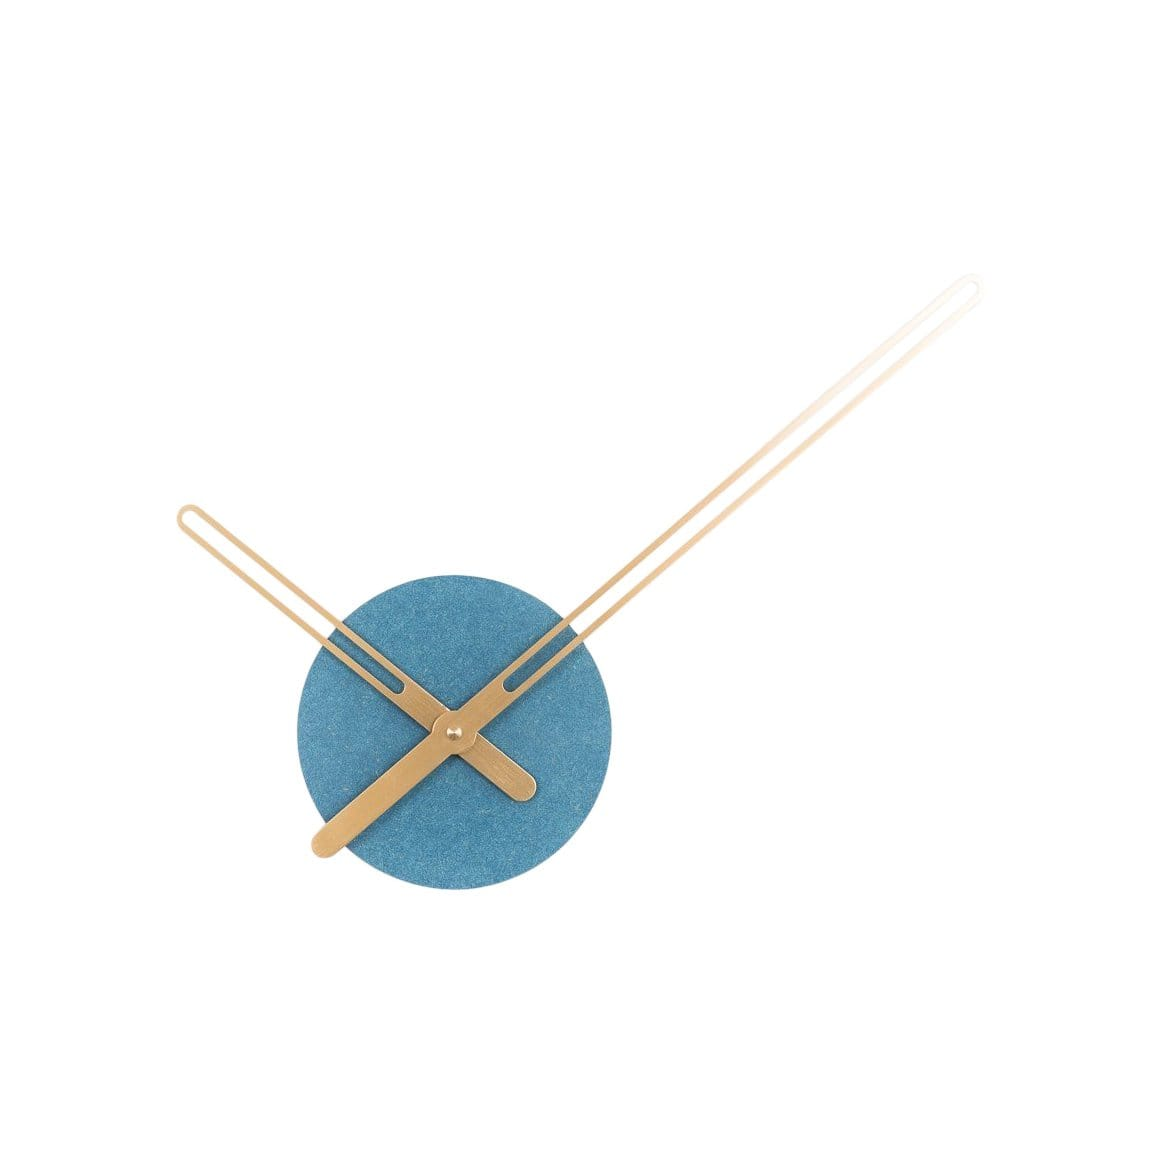 Nordahl Konings Clocks Sweep Blue & Brass Wall Clock